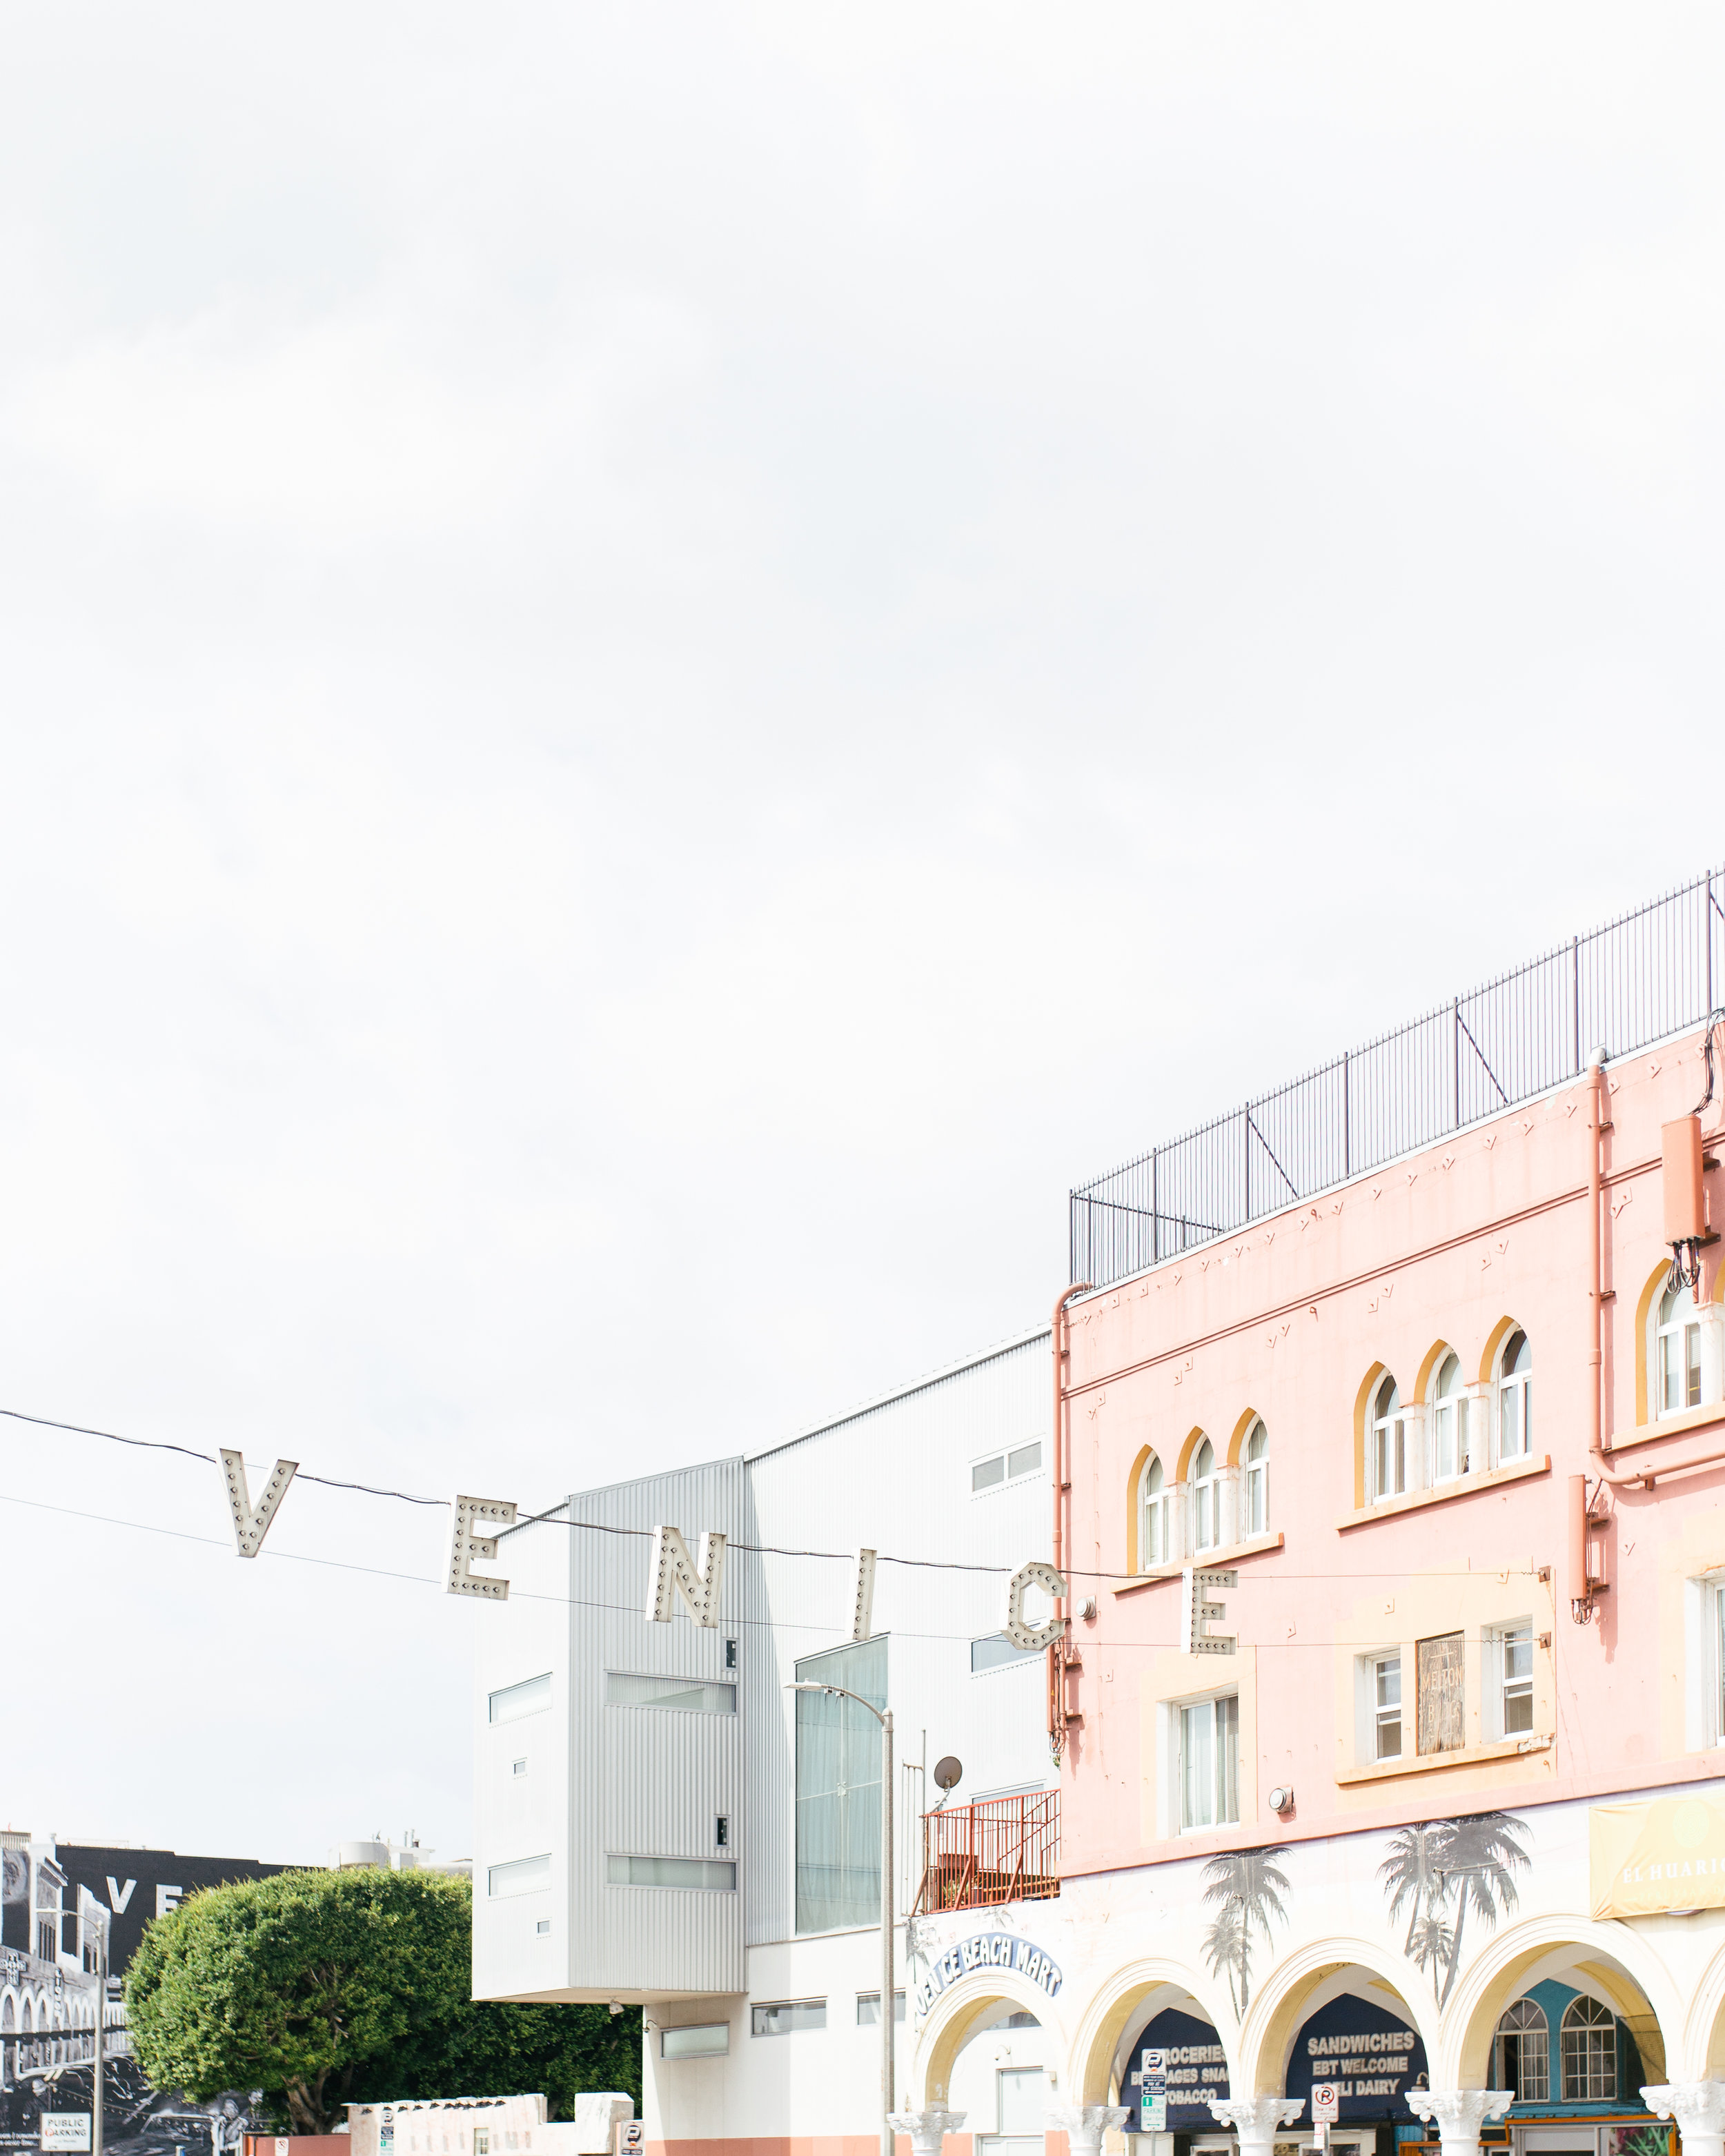 The Most Instagrammable Spots in Los Angeles, California